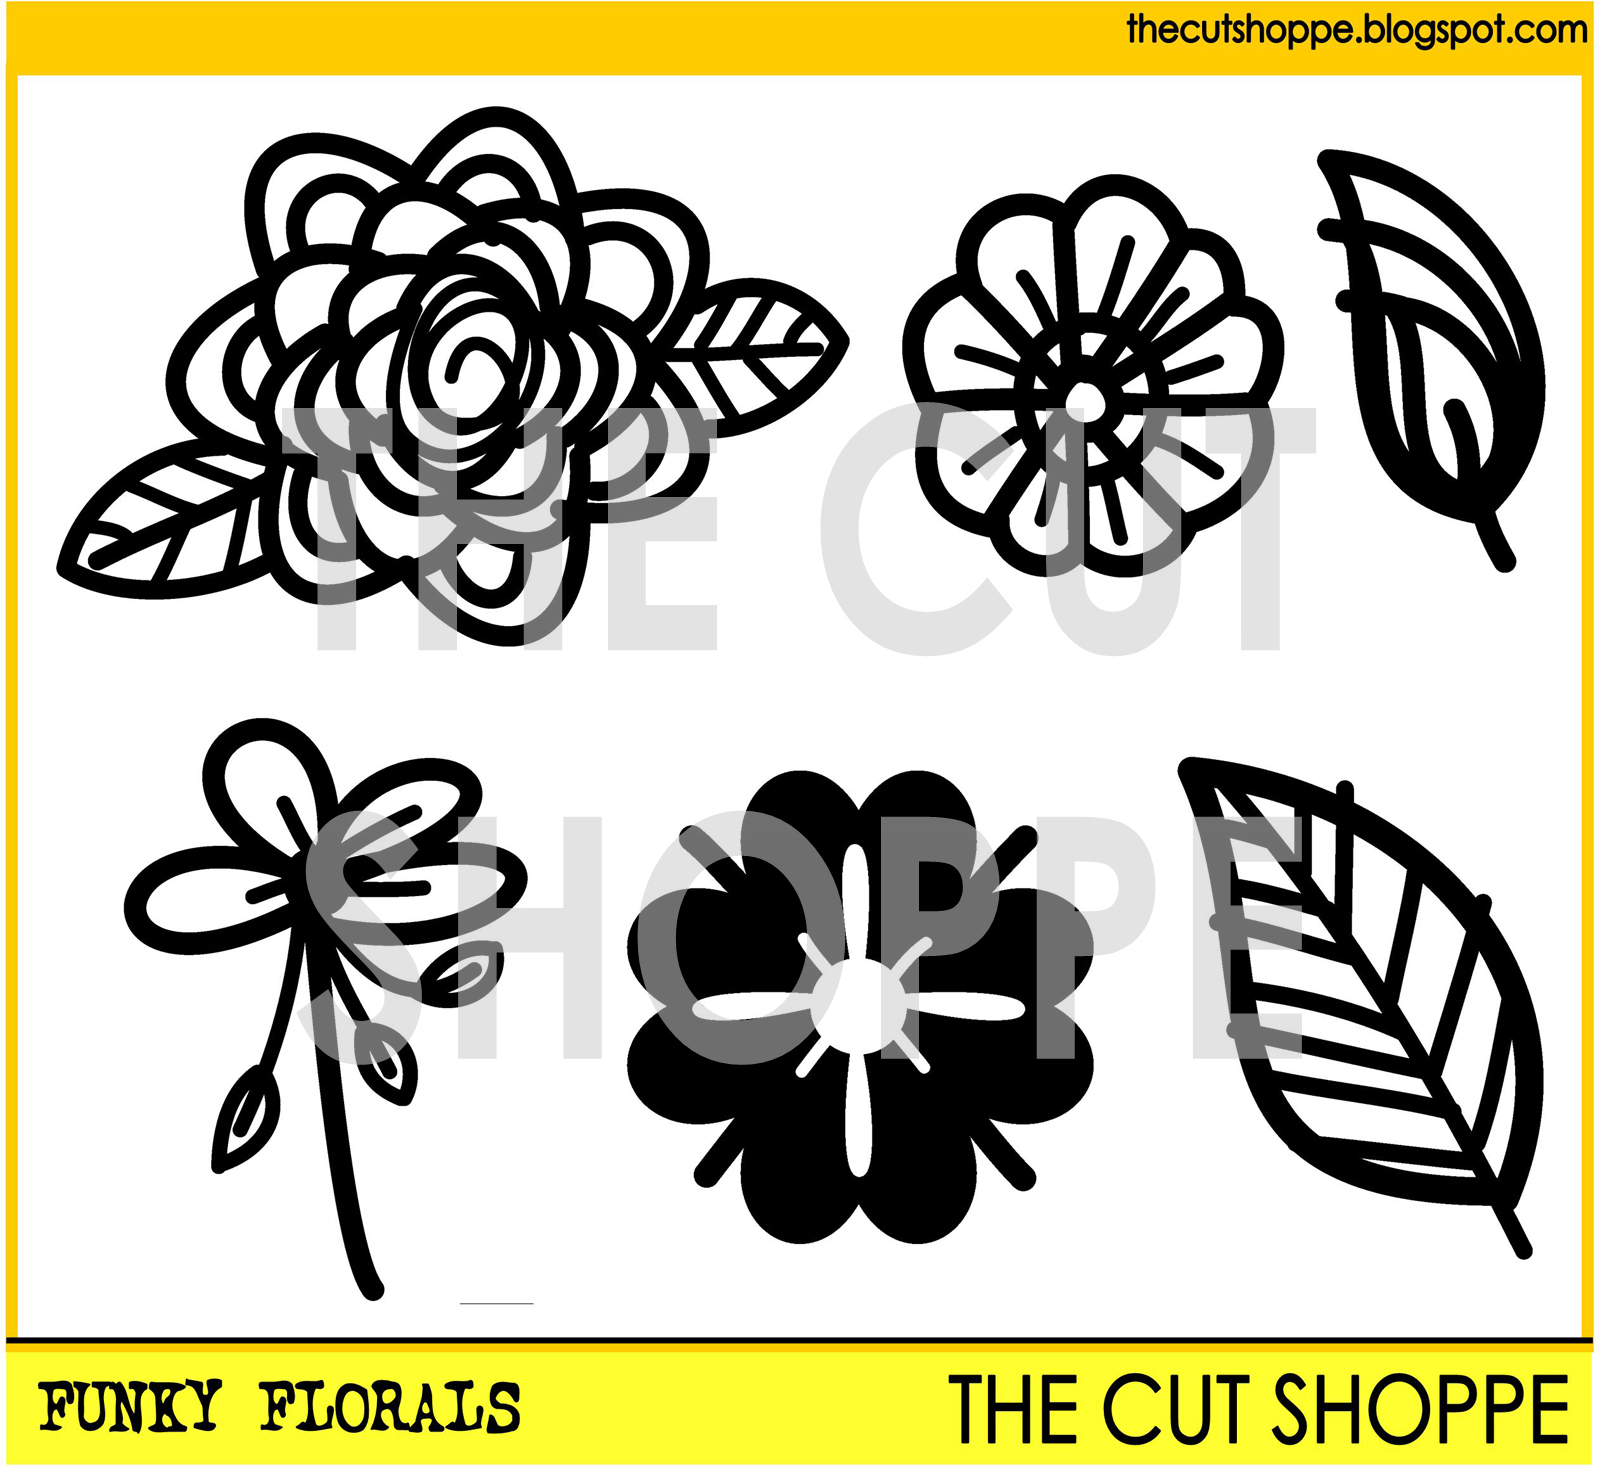 https://www.etsy.com/listing/201447417/the-funky-florals-cut-file-includes-4?ref=shop_home_active_4